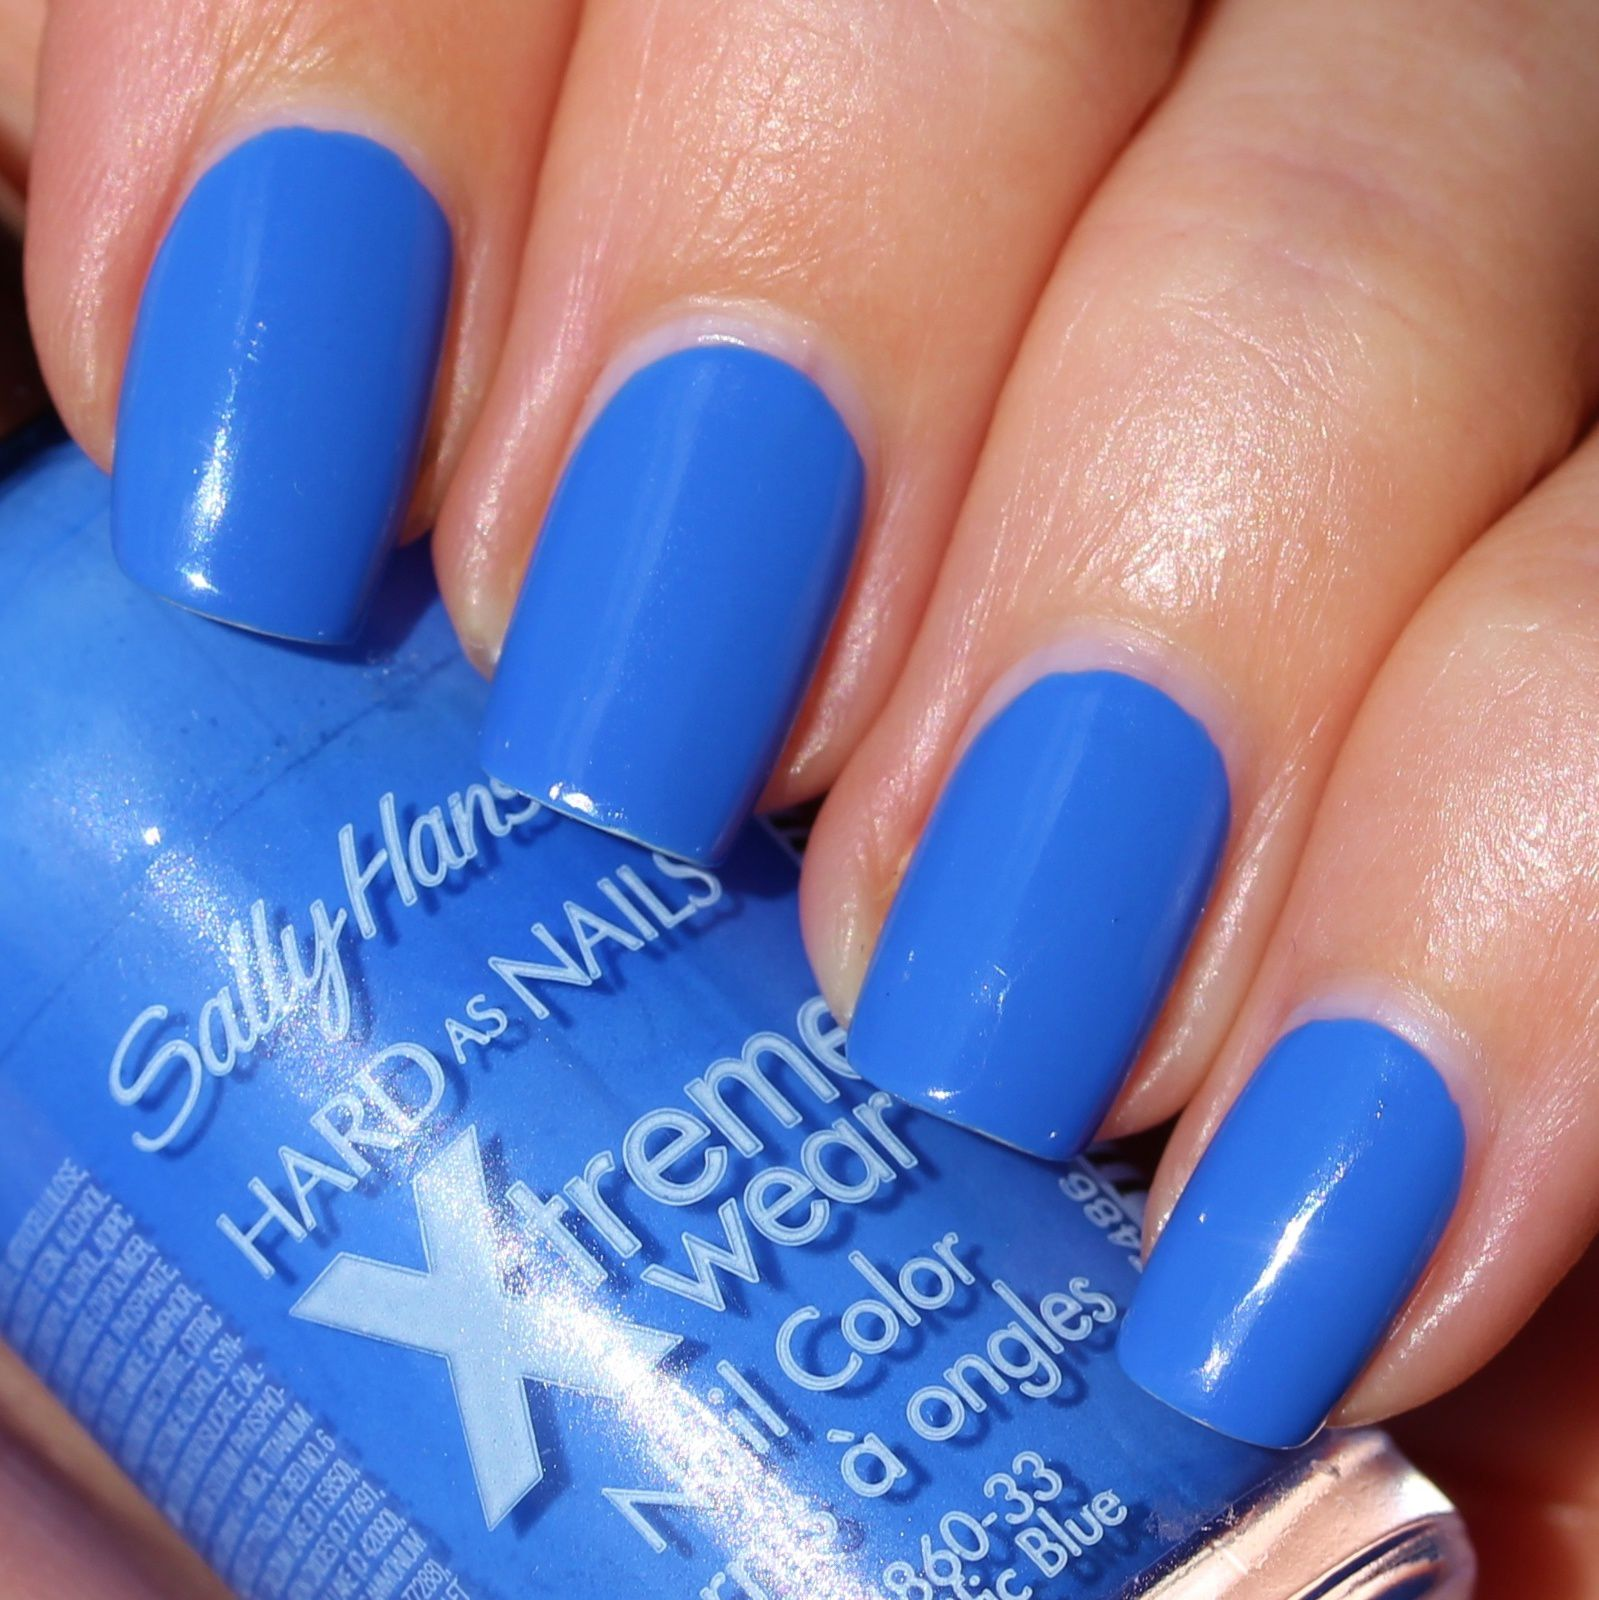 Duri Rejuvacote / Sally Hansen Xtreme Wear Pacific Blue / OutTheDoor Top Coat